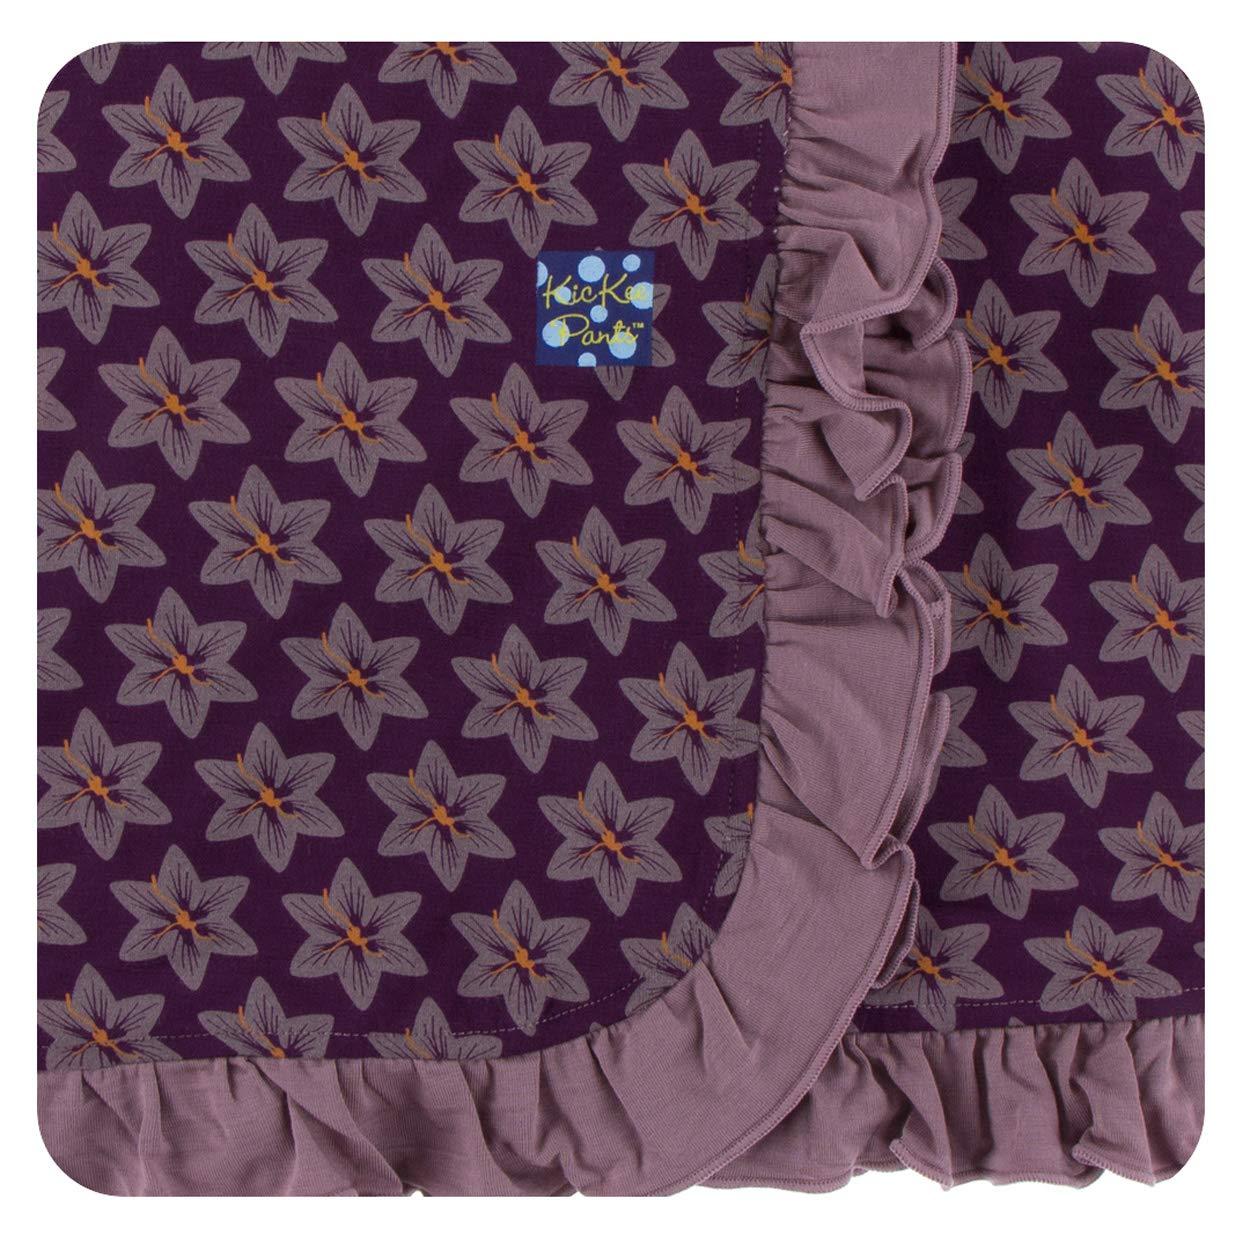 85de2c074 Amazon.com: Kickee Pants Little Girls Print Ruffle Stroller Blanket African  Violets, One Size: Clothing